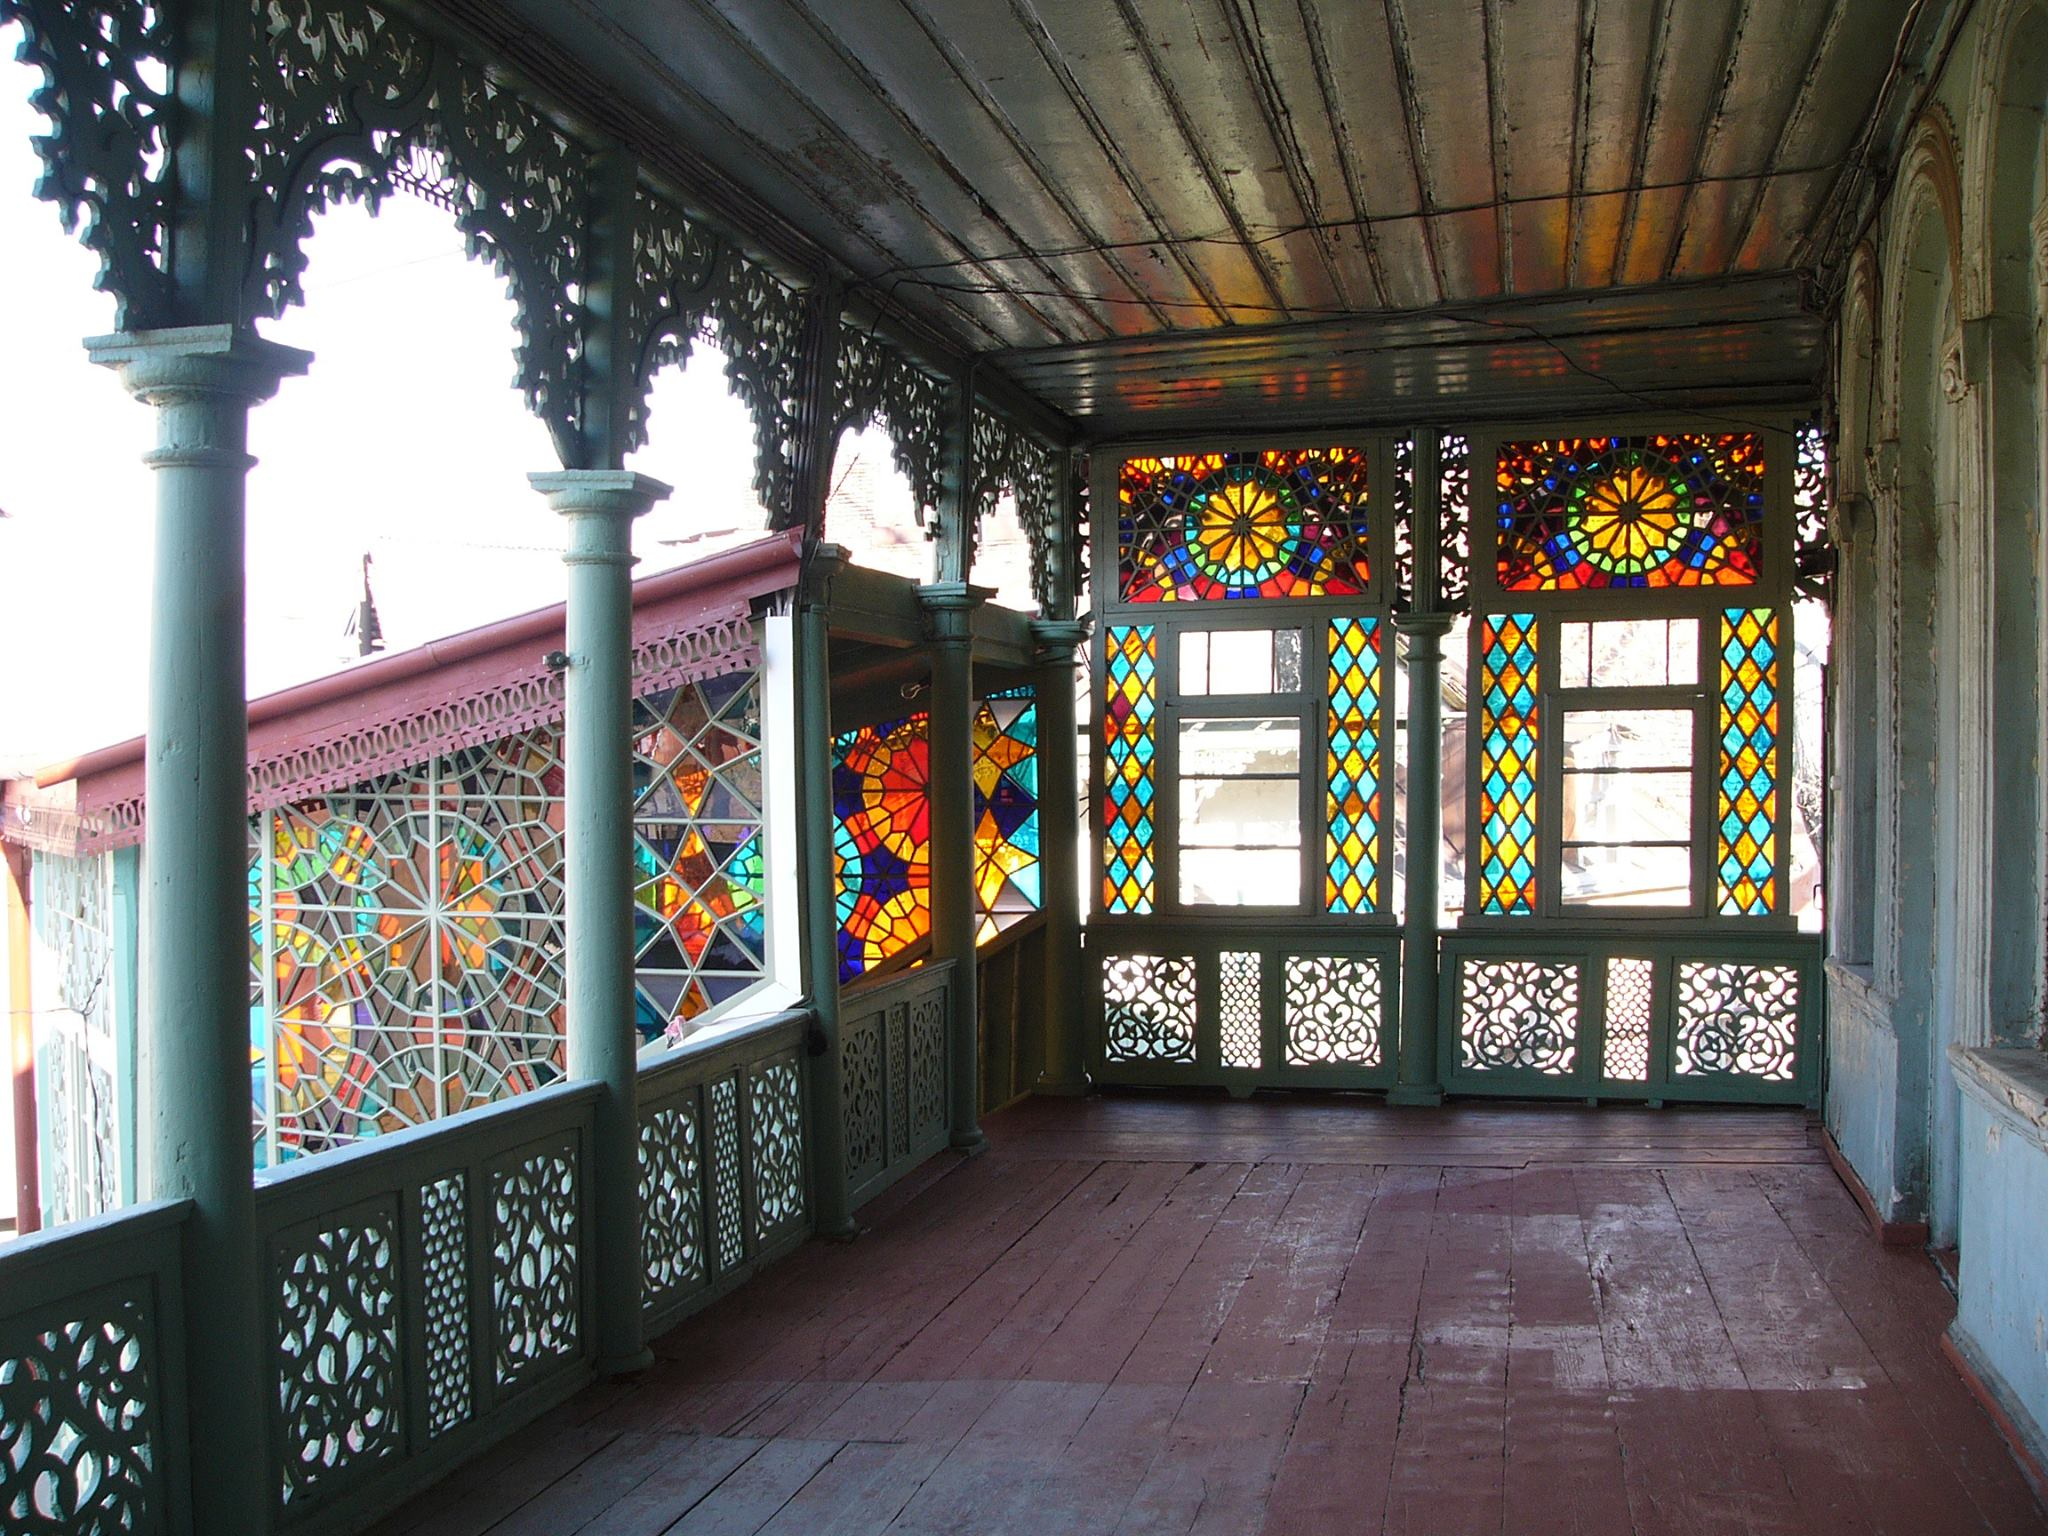 Beauty of old Tbilisi